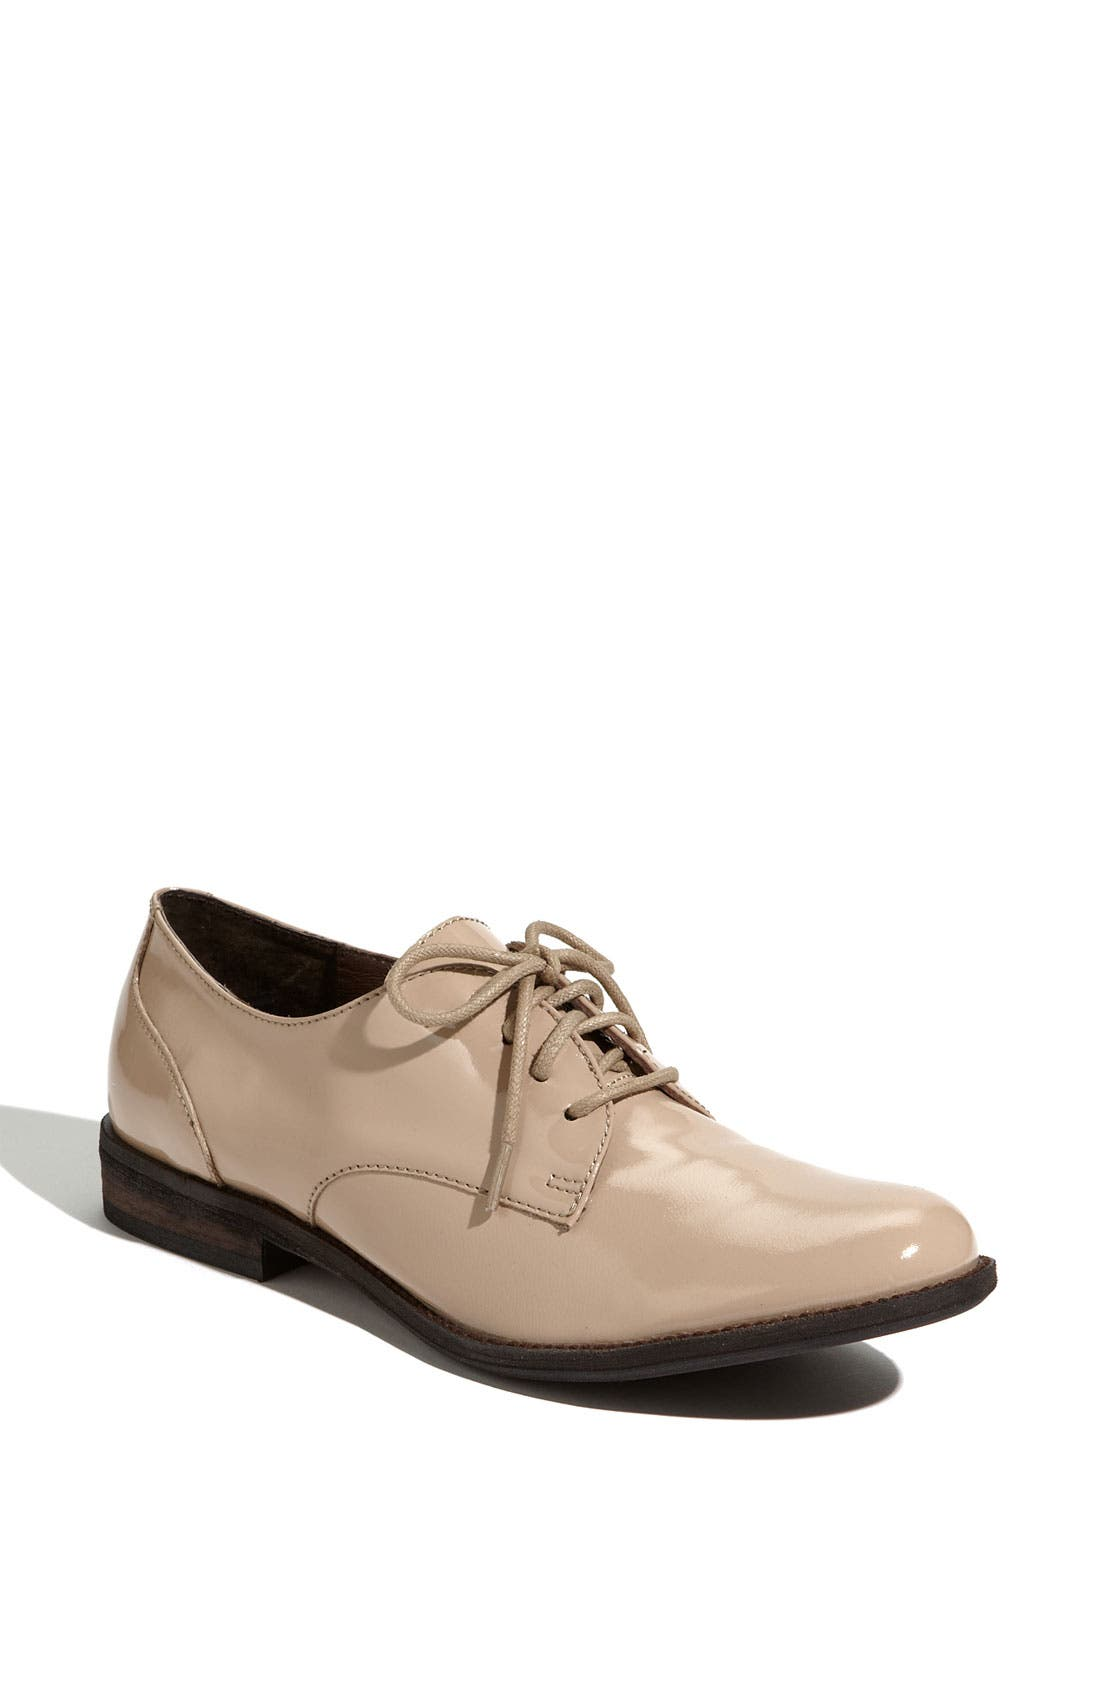 Main Image - Halogen 'Hayley' Patent Oxford